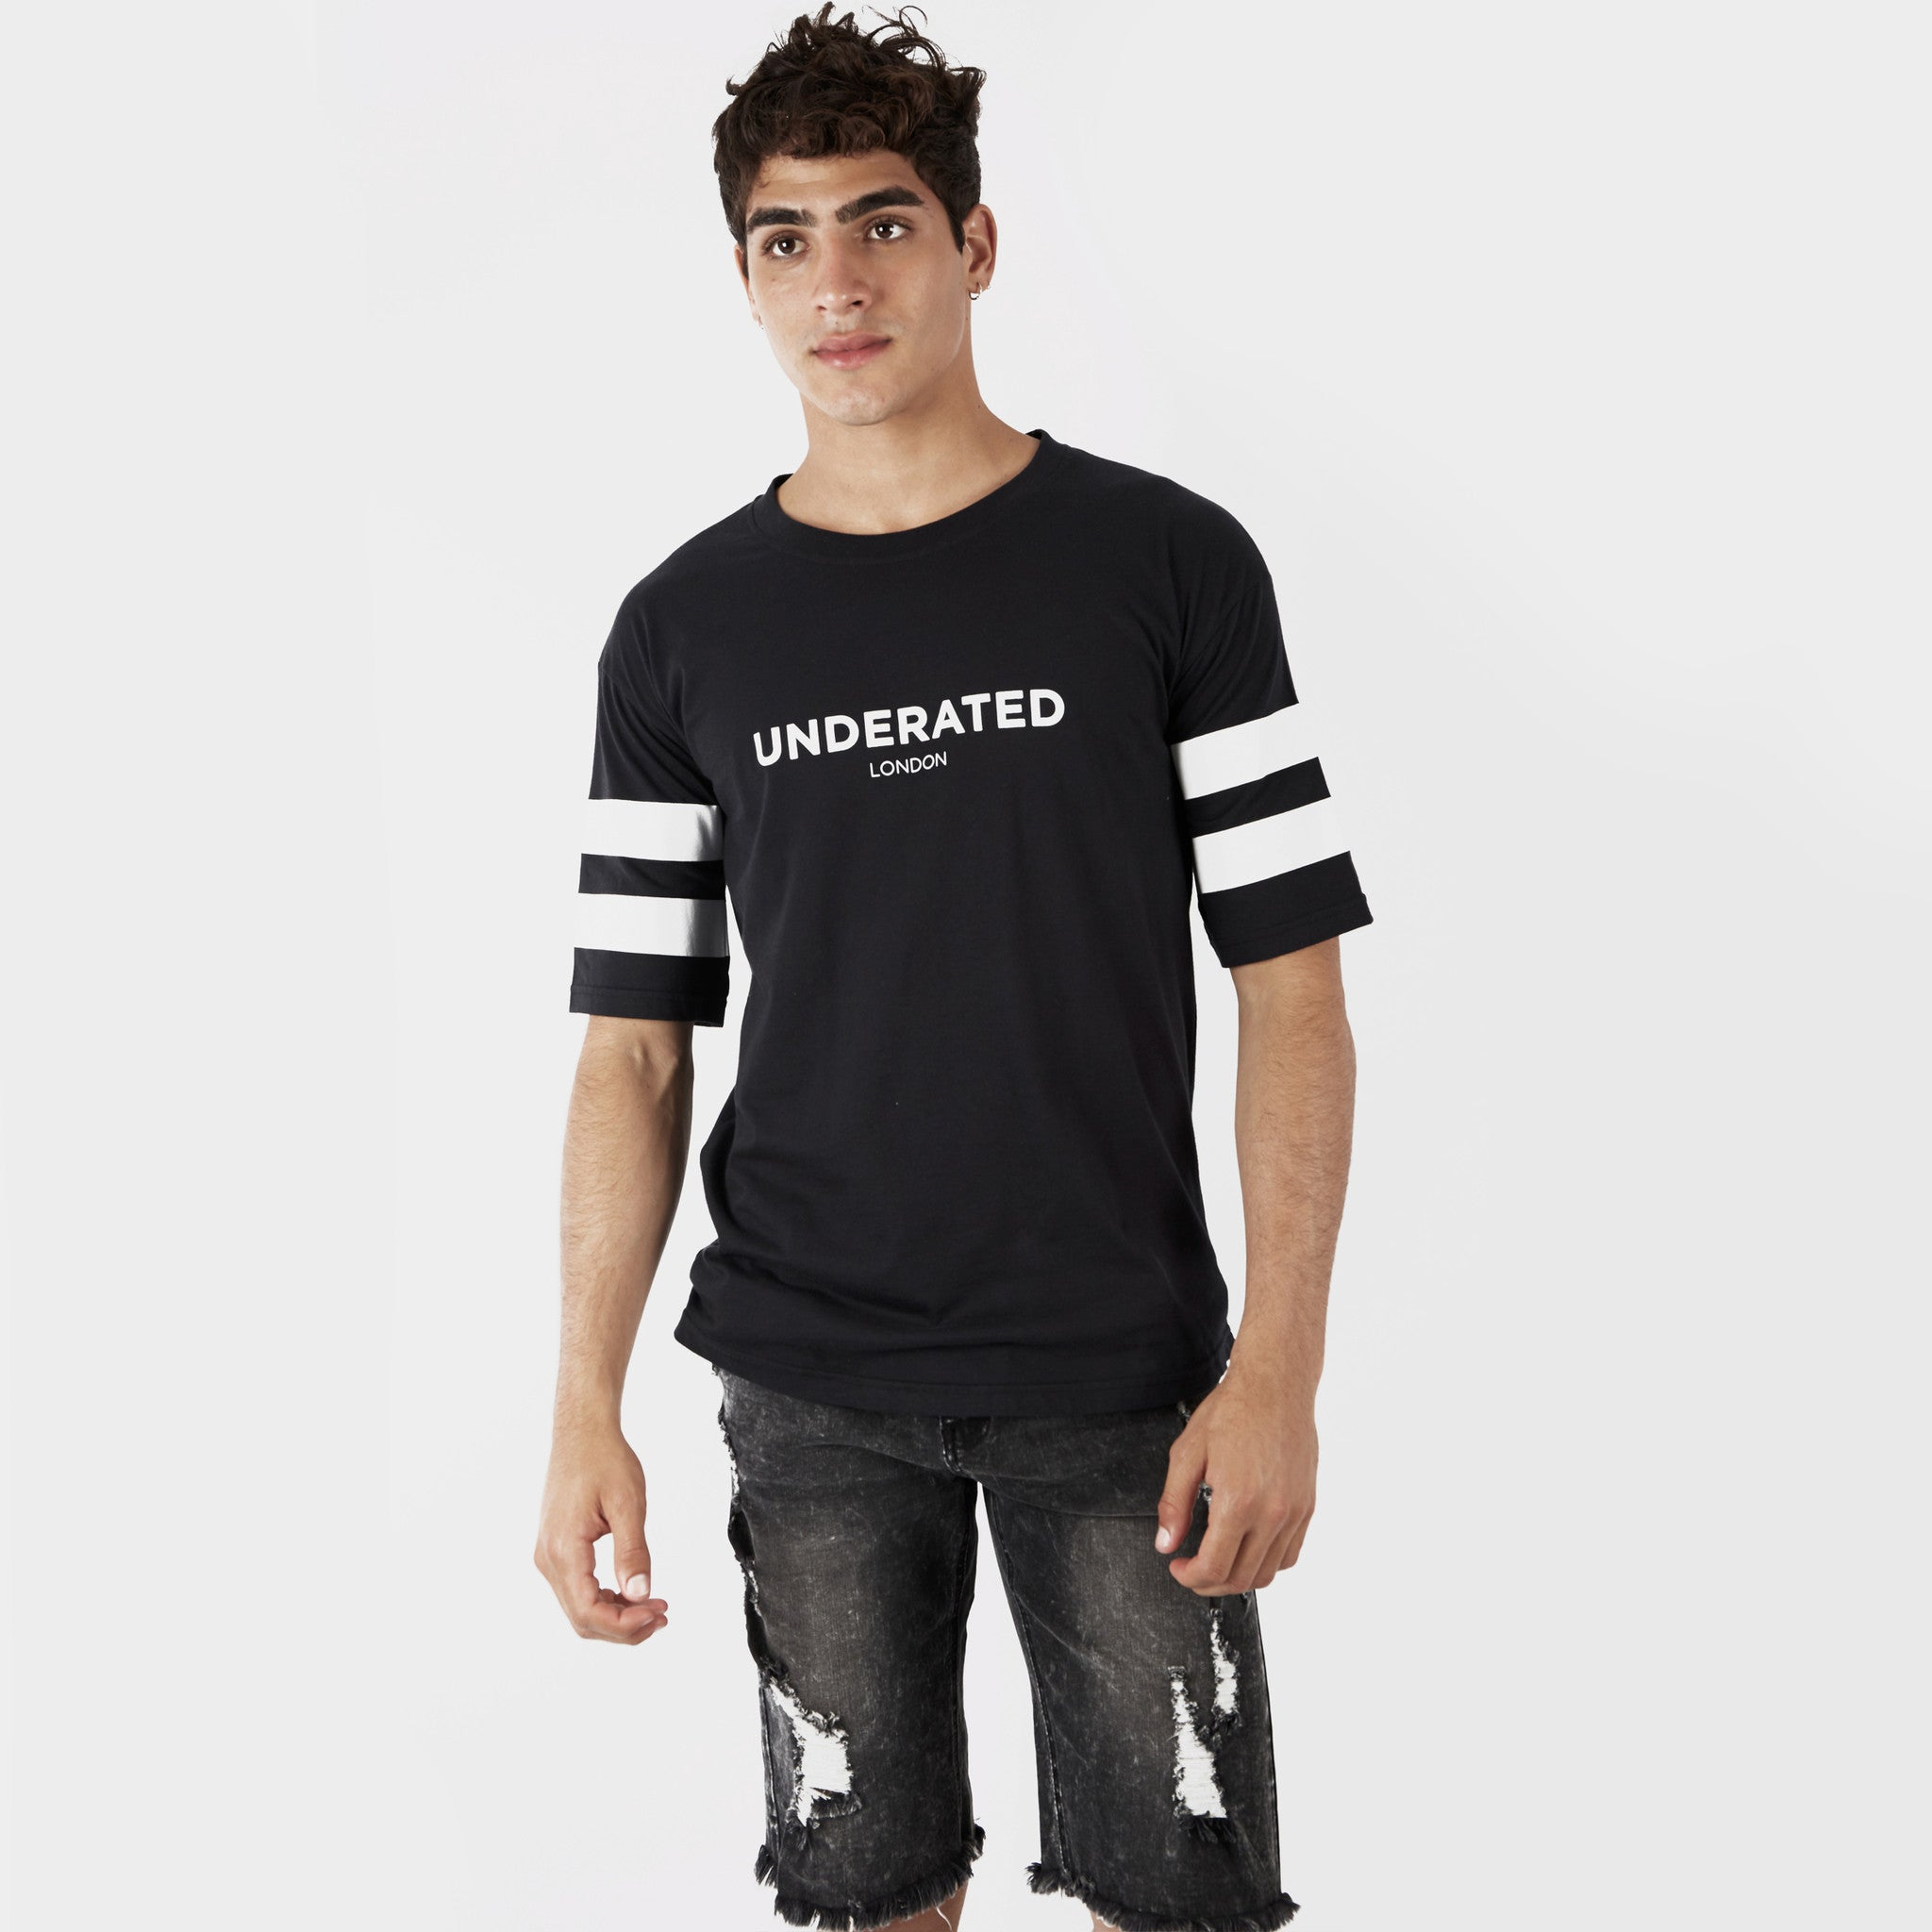 TS404 Print Tee - Black - underated london - underatedco - 5